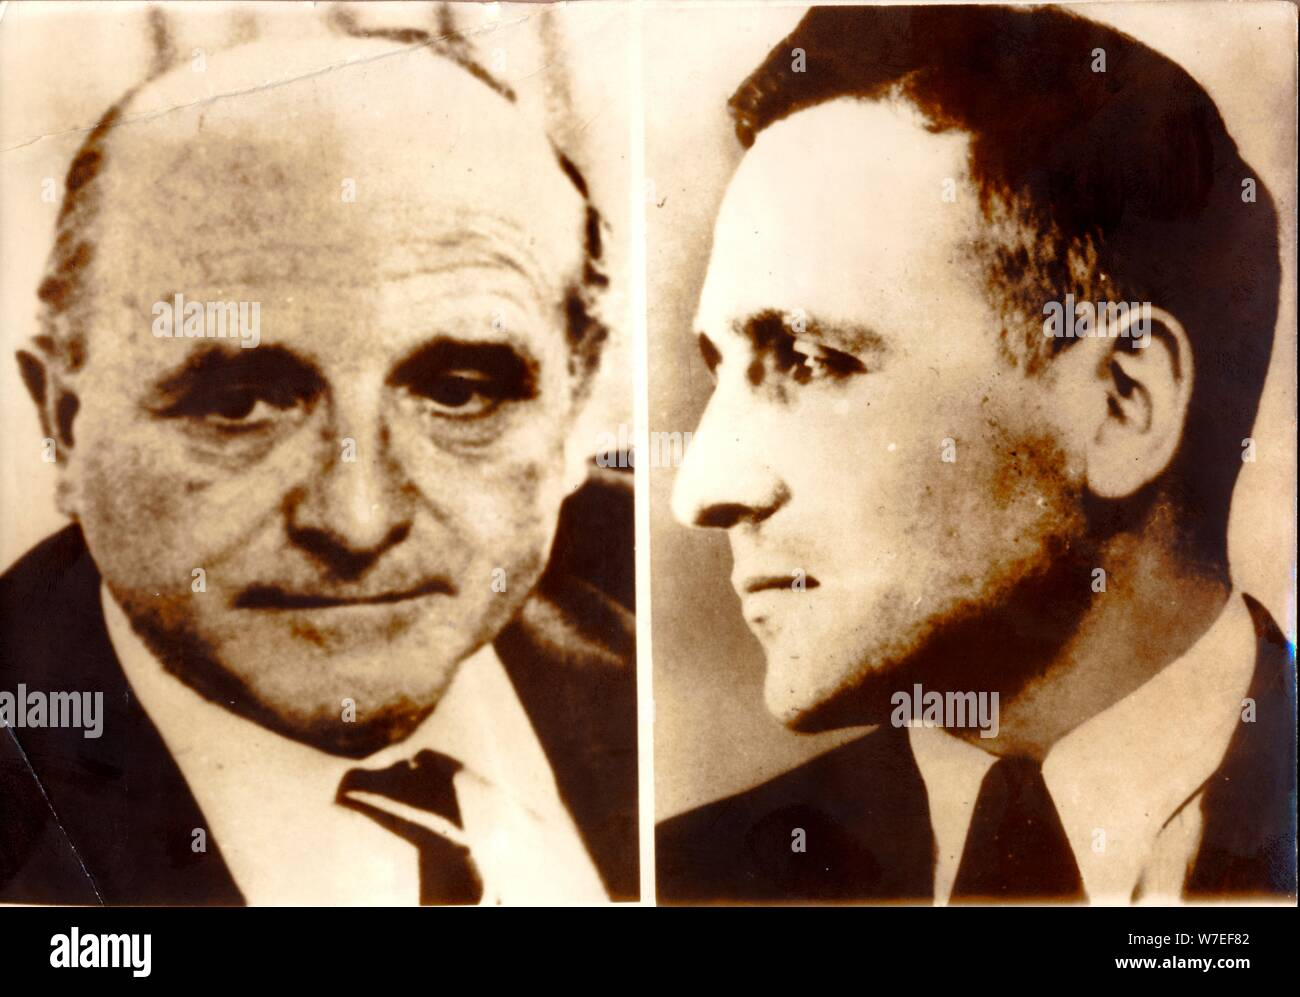 Two photographs of Klaus Barbie, German Gestapo officer and war criminal, c1940s-c1980s(?). Artist: Unknown Stock Photo